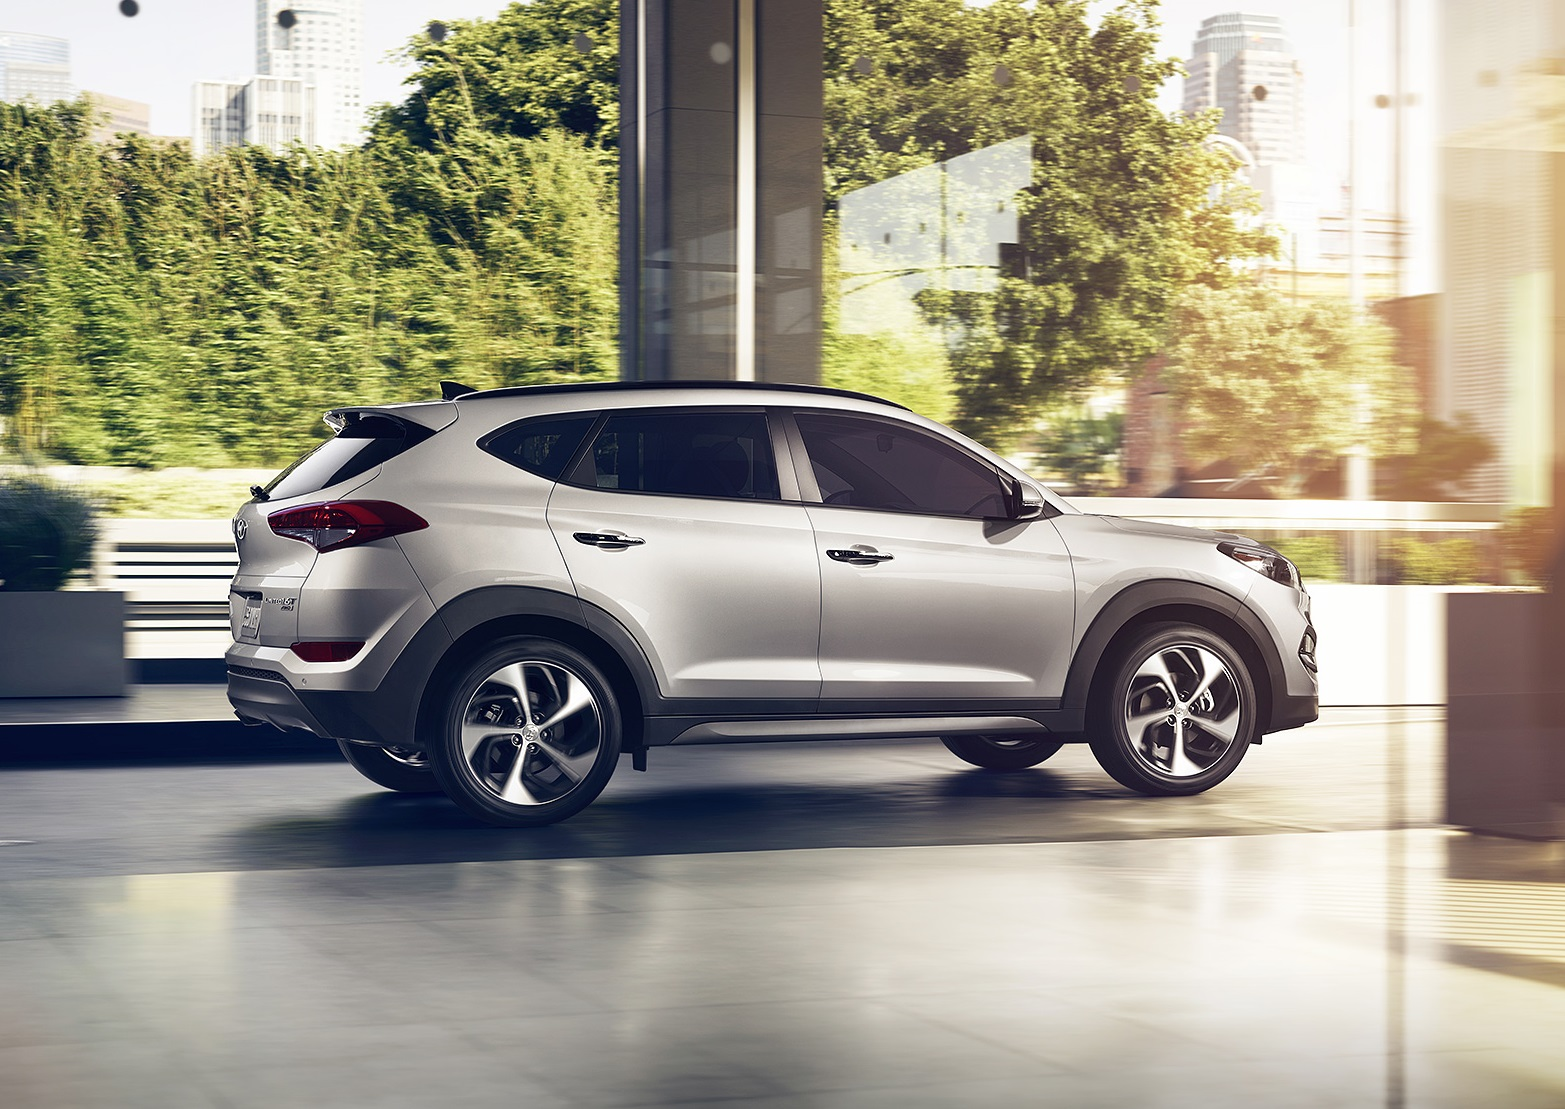 Westminster Area Hyundai Dealership - 2018 Hyundai Tucson